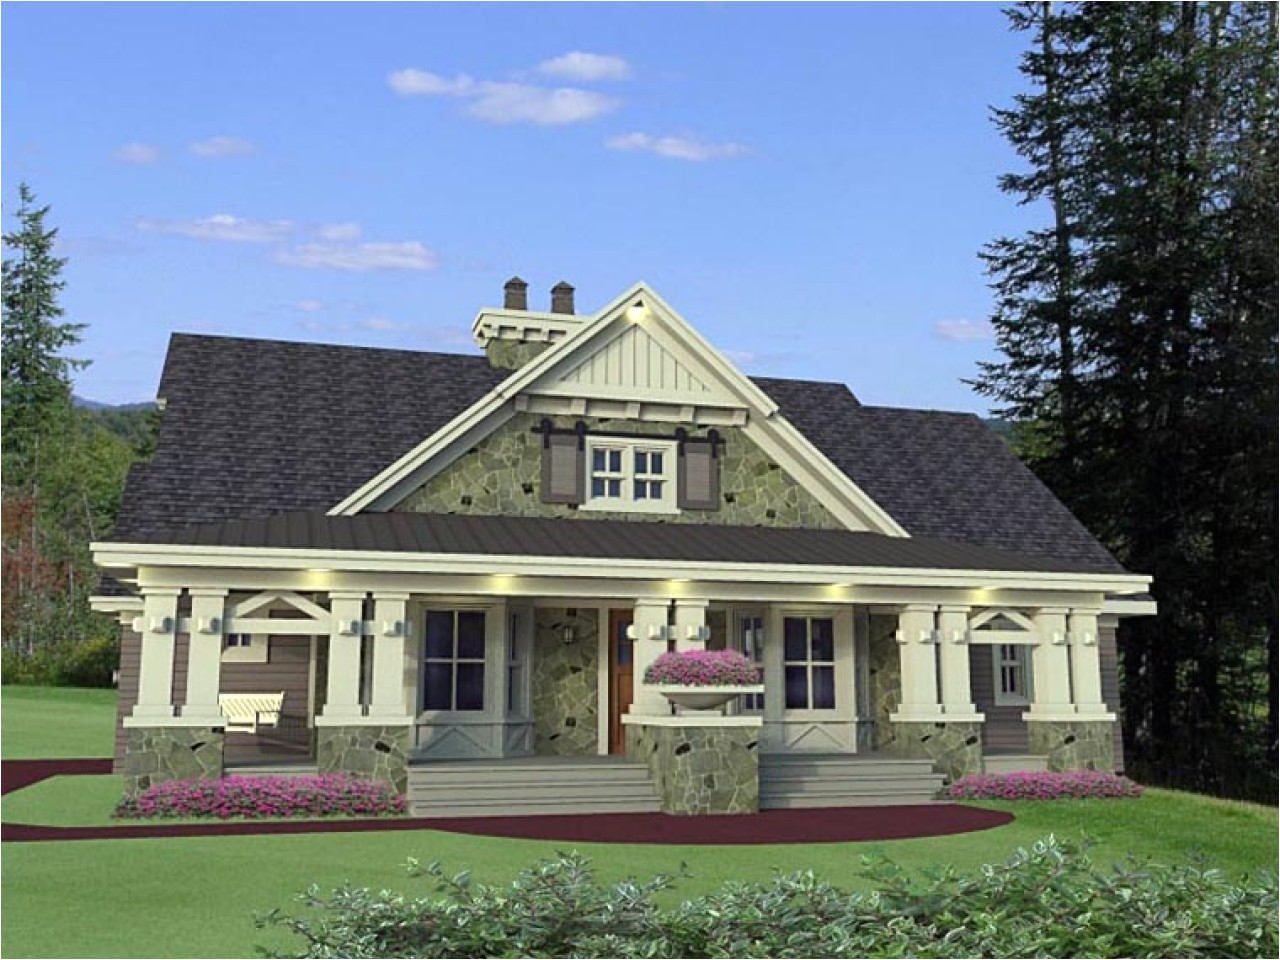 befb80b3360b0d76 craftsman style house plans home style craftsman house plans